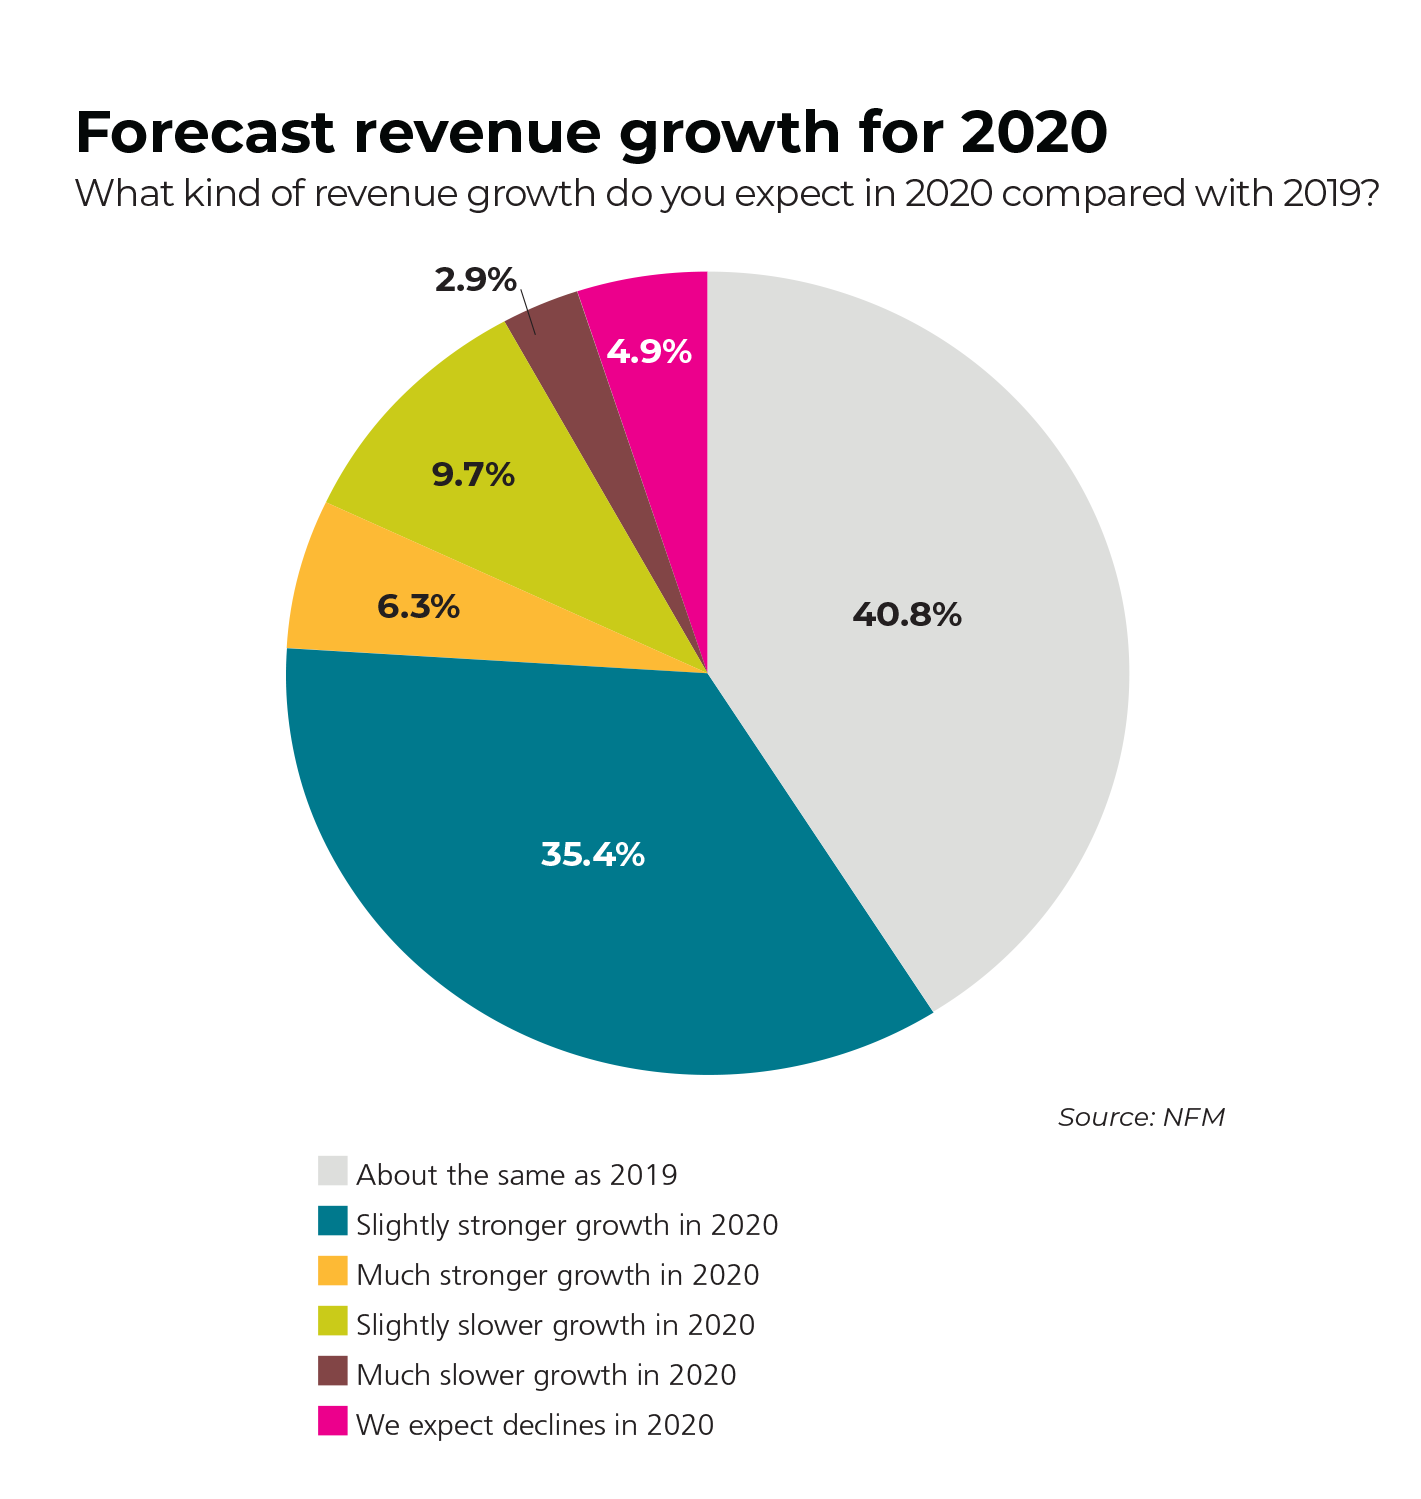 market overview 2020 forecast revenue